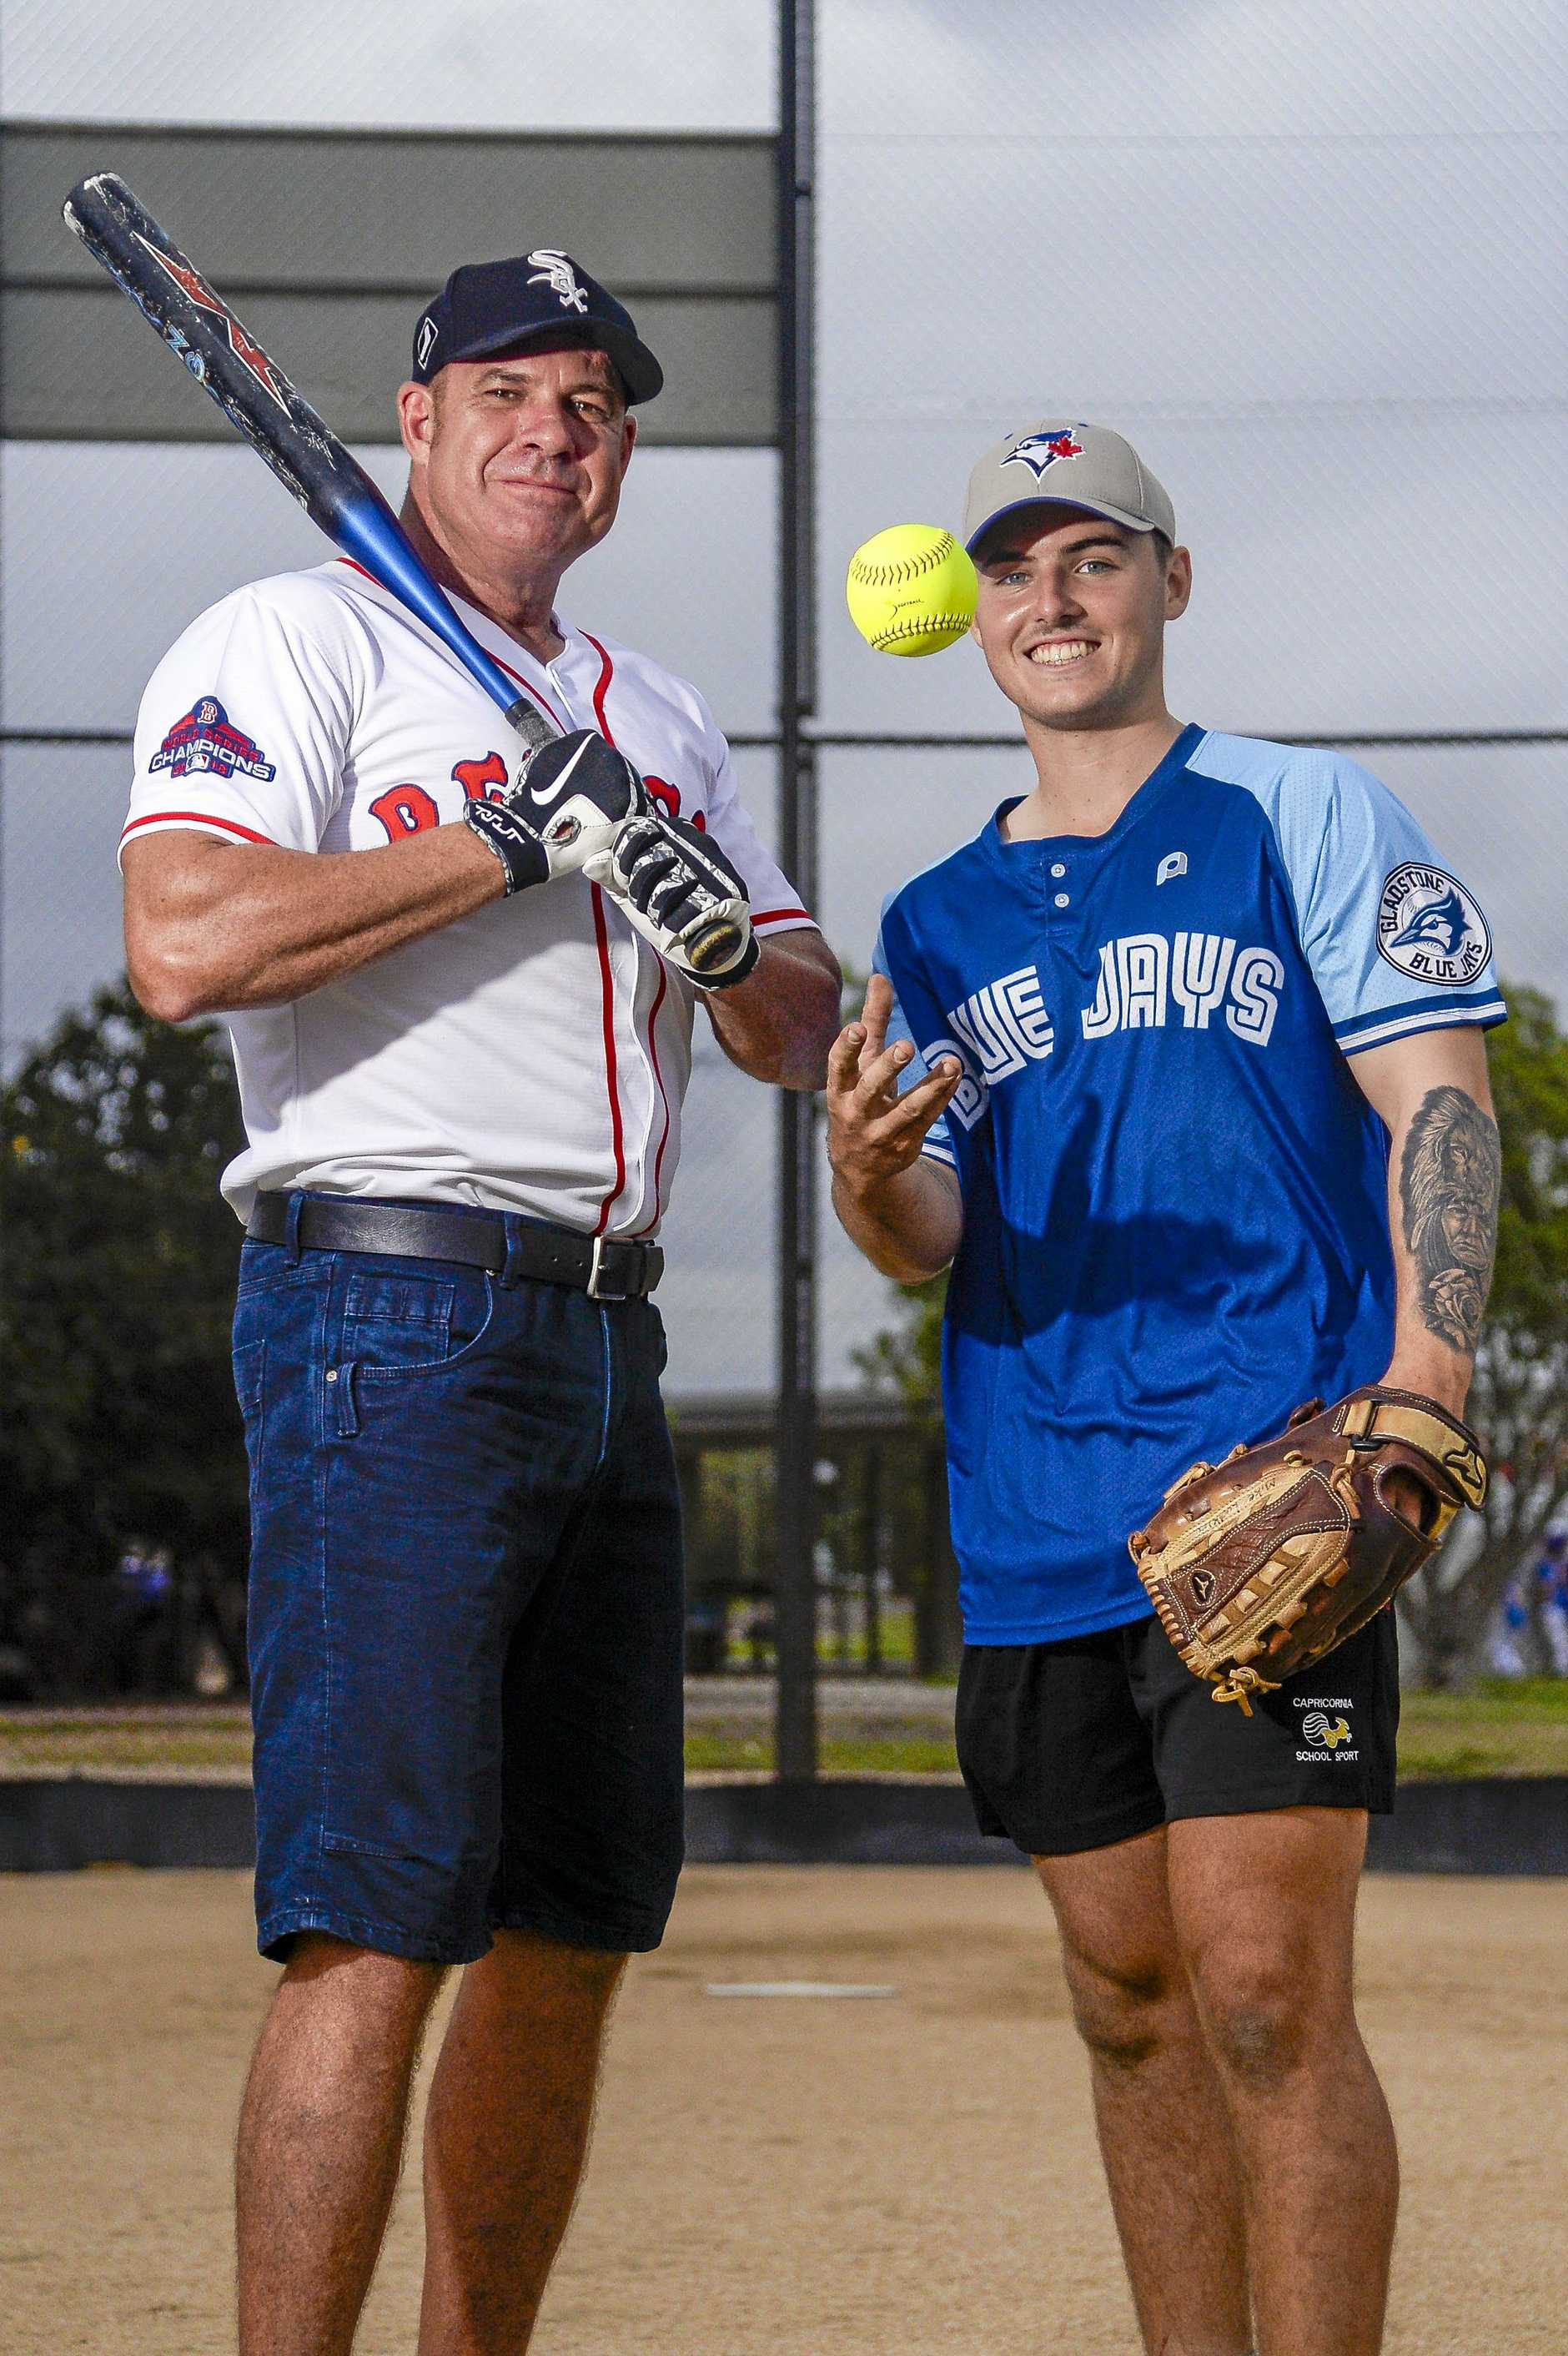 Nigel Jones from Red Sox, Michael Ludkin from Blue Jays are looking forward to this weekend's grand final in Gladstone.